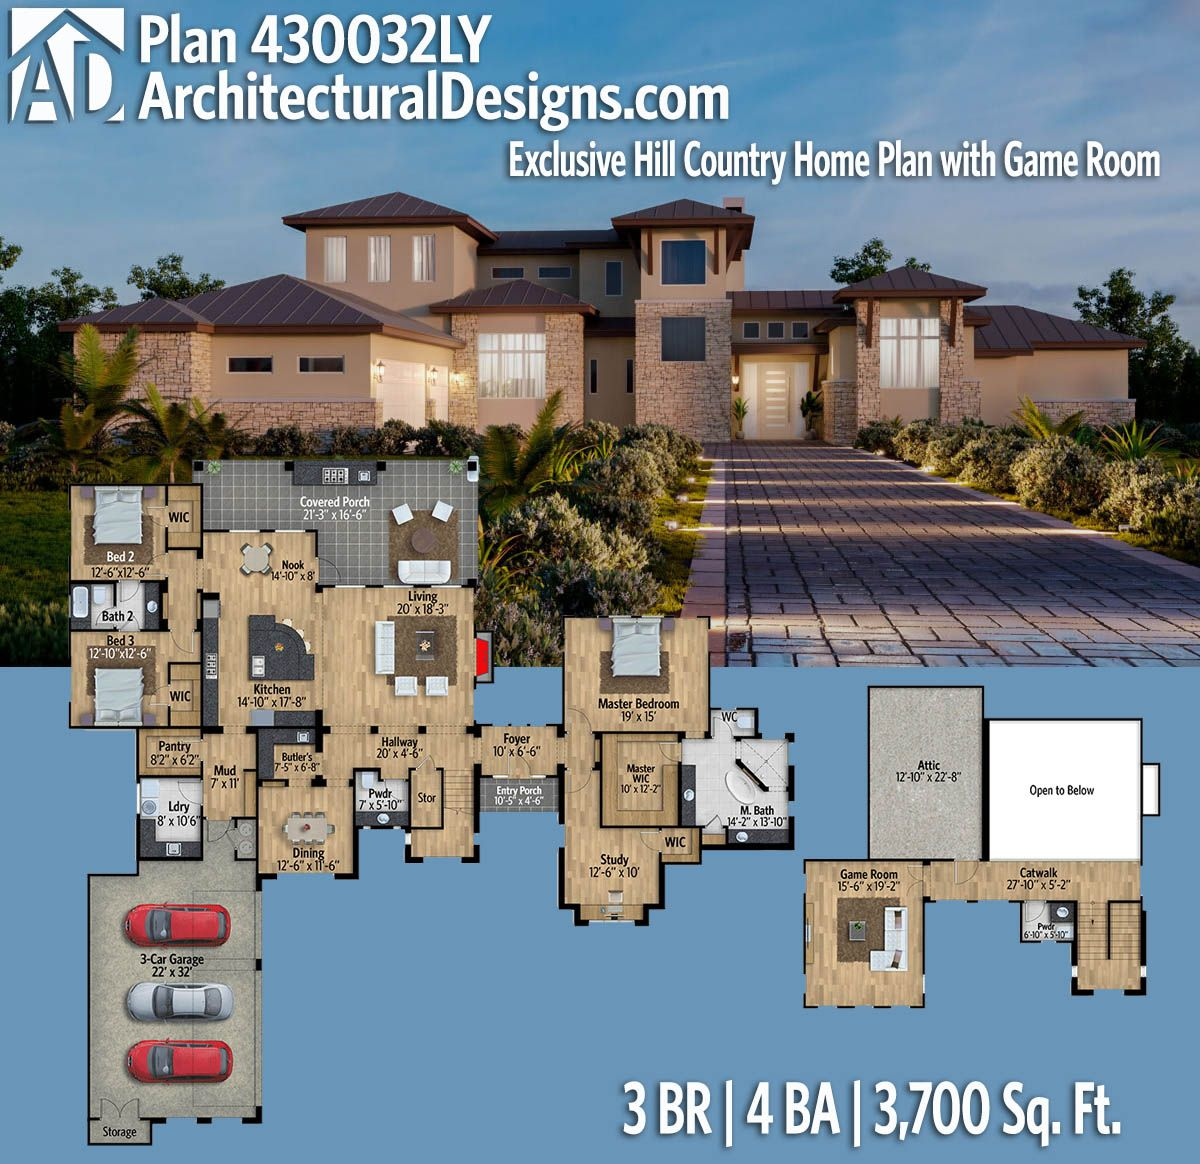 Plan 430032LY: Exclusive Hill Country Home Plan With Game